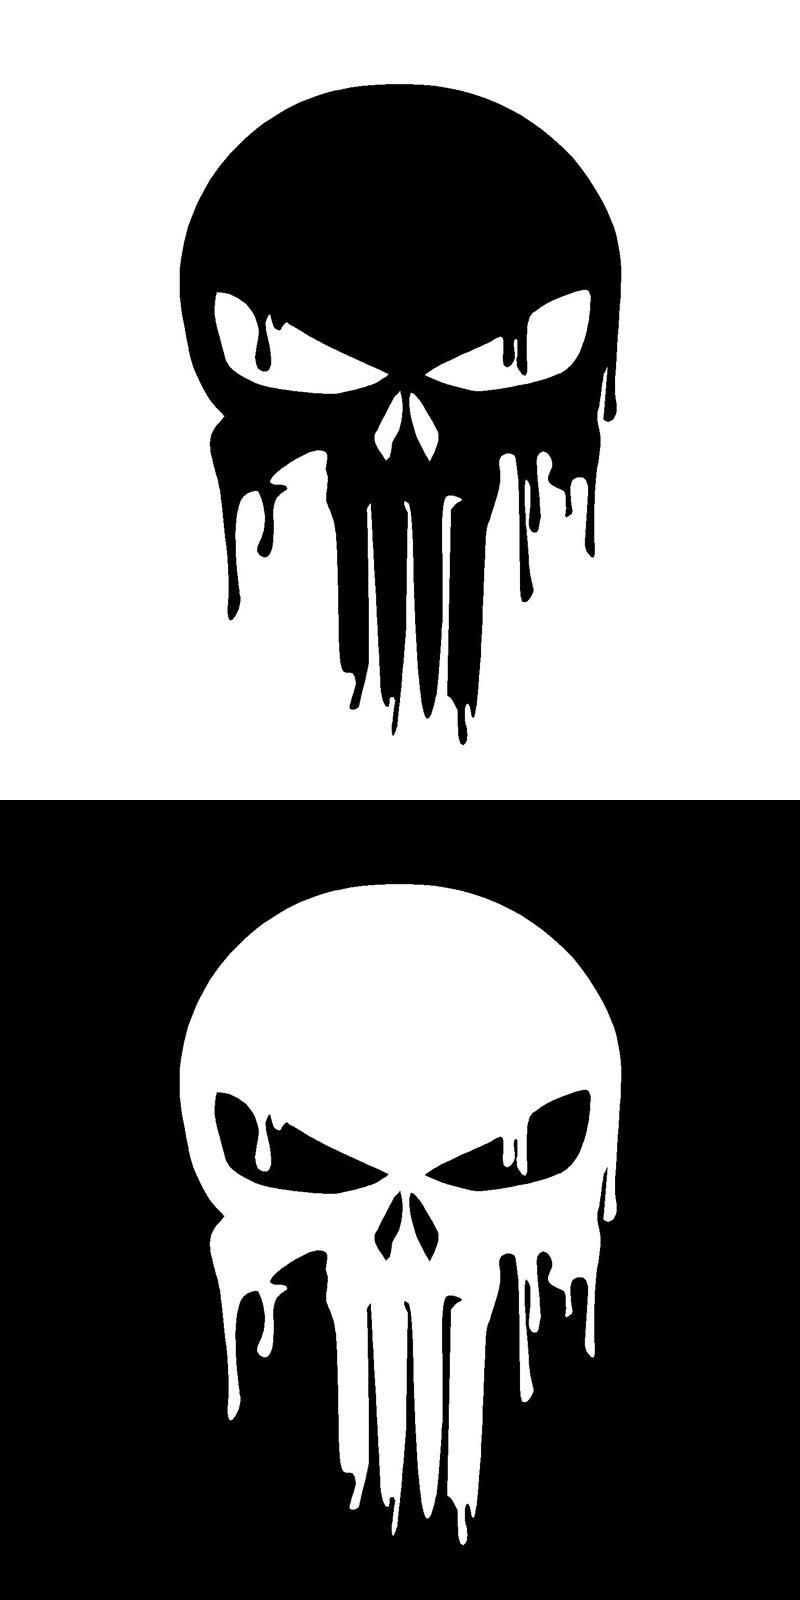 Visit to buy 15 210 1cm dripping melting bloody punisher skull vinyl car stickers decals motorcycle decorative accessories c4 0941 advertisement